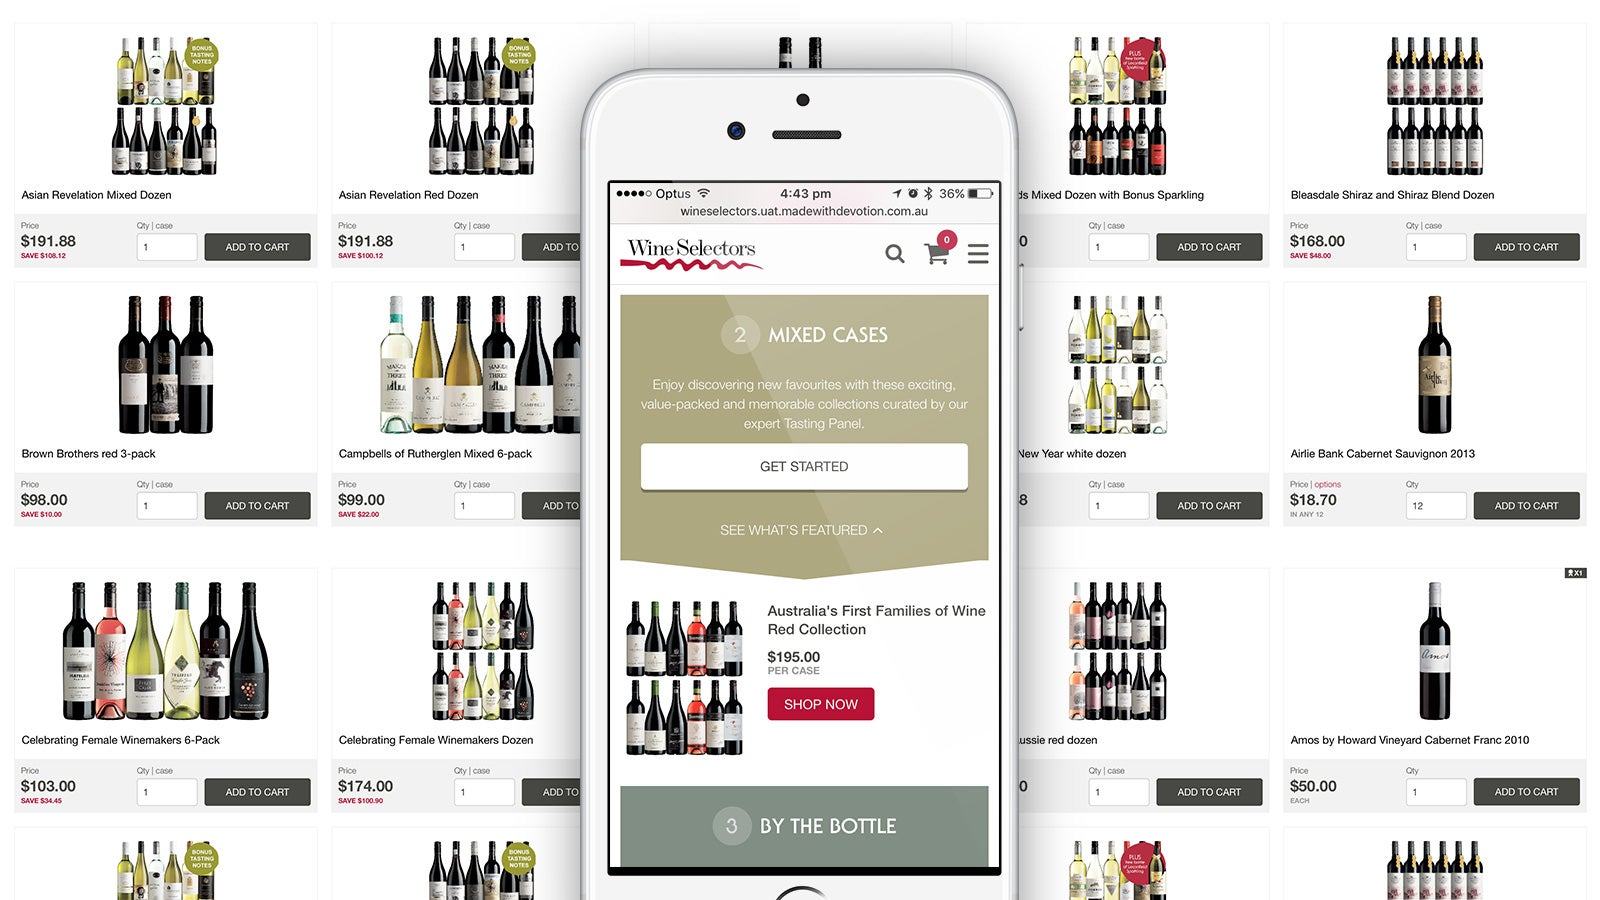 Wine Selectors | Mixed Cases product offerings behind an iPhone displaying the mobile website | Devotion